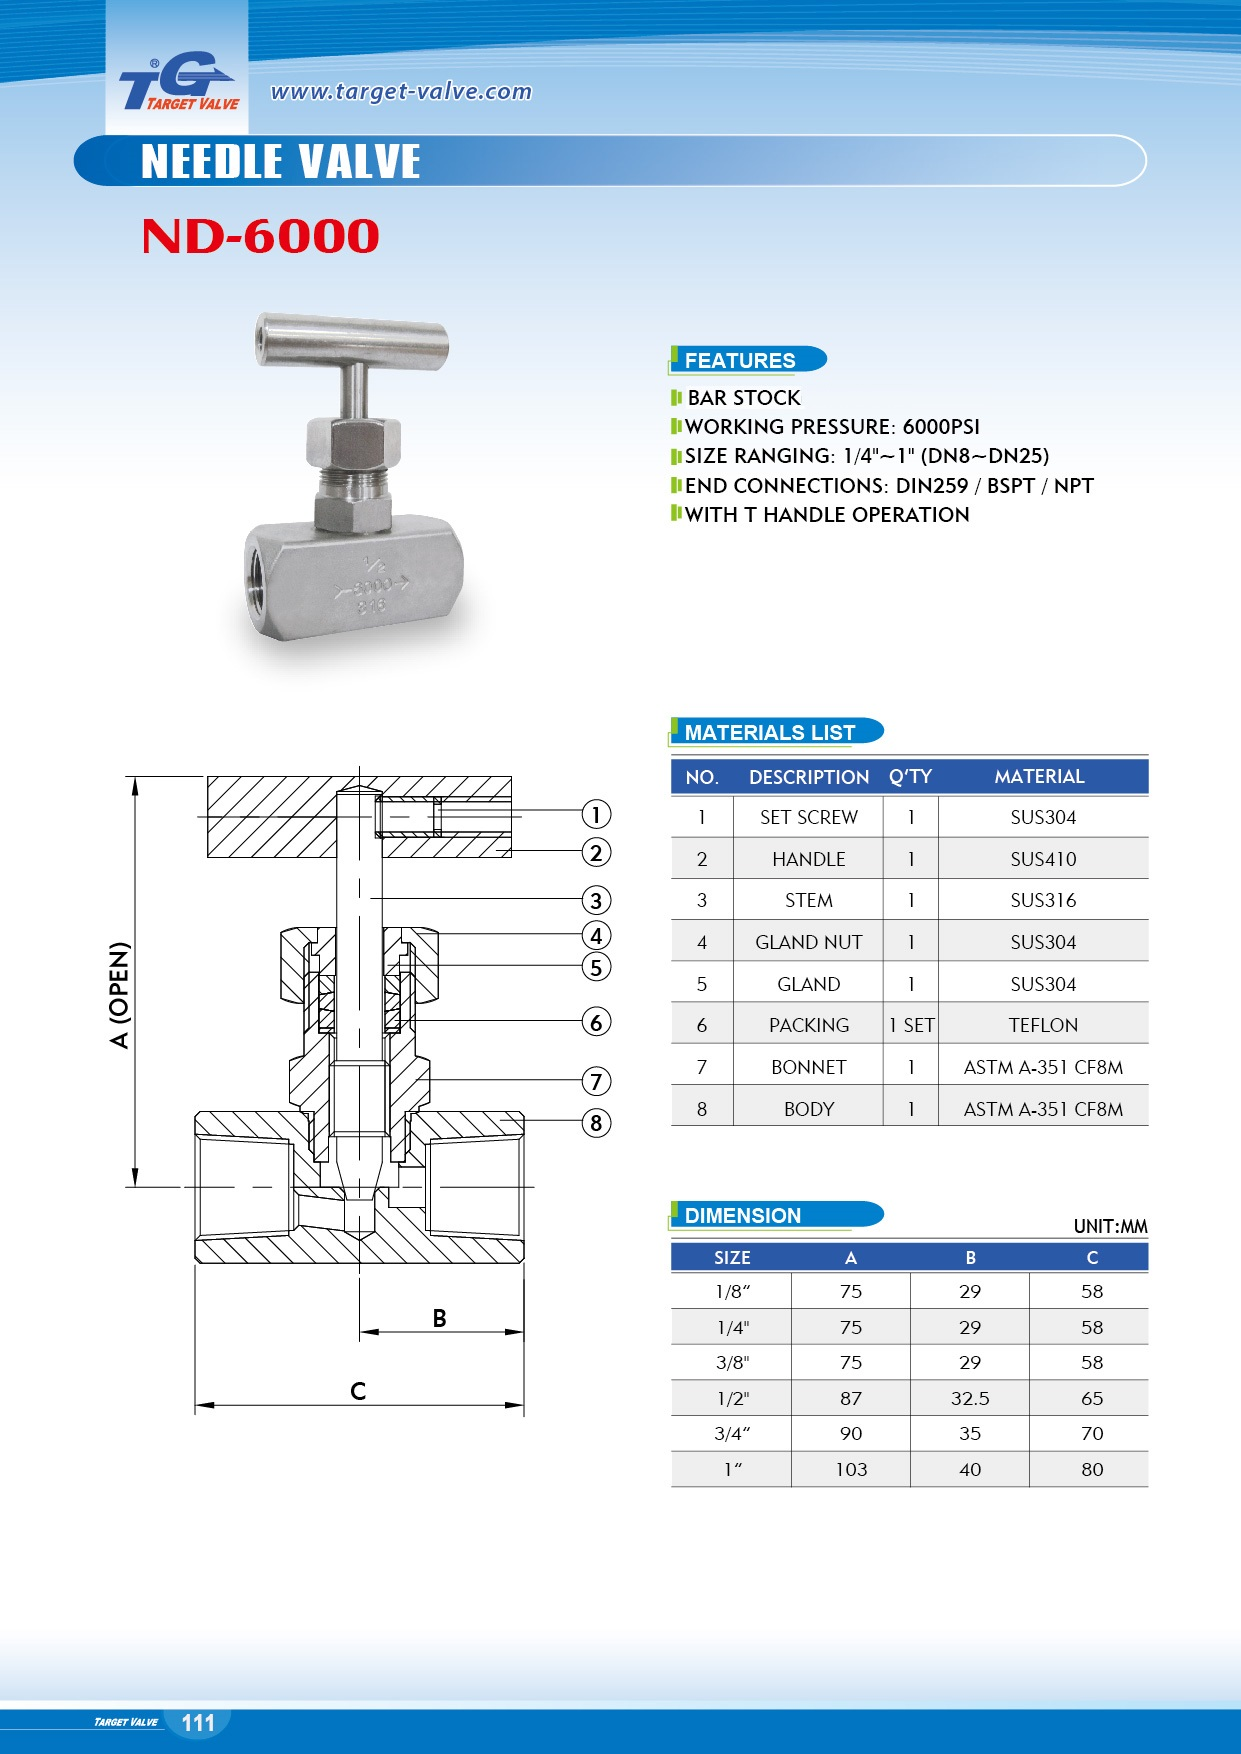 NEEDLE VALVE - ND-6000